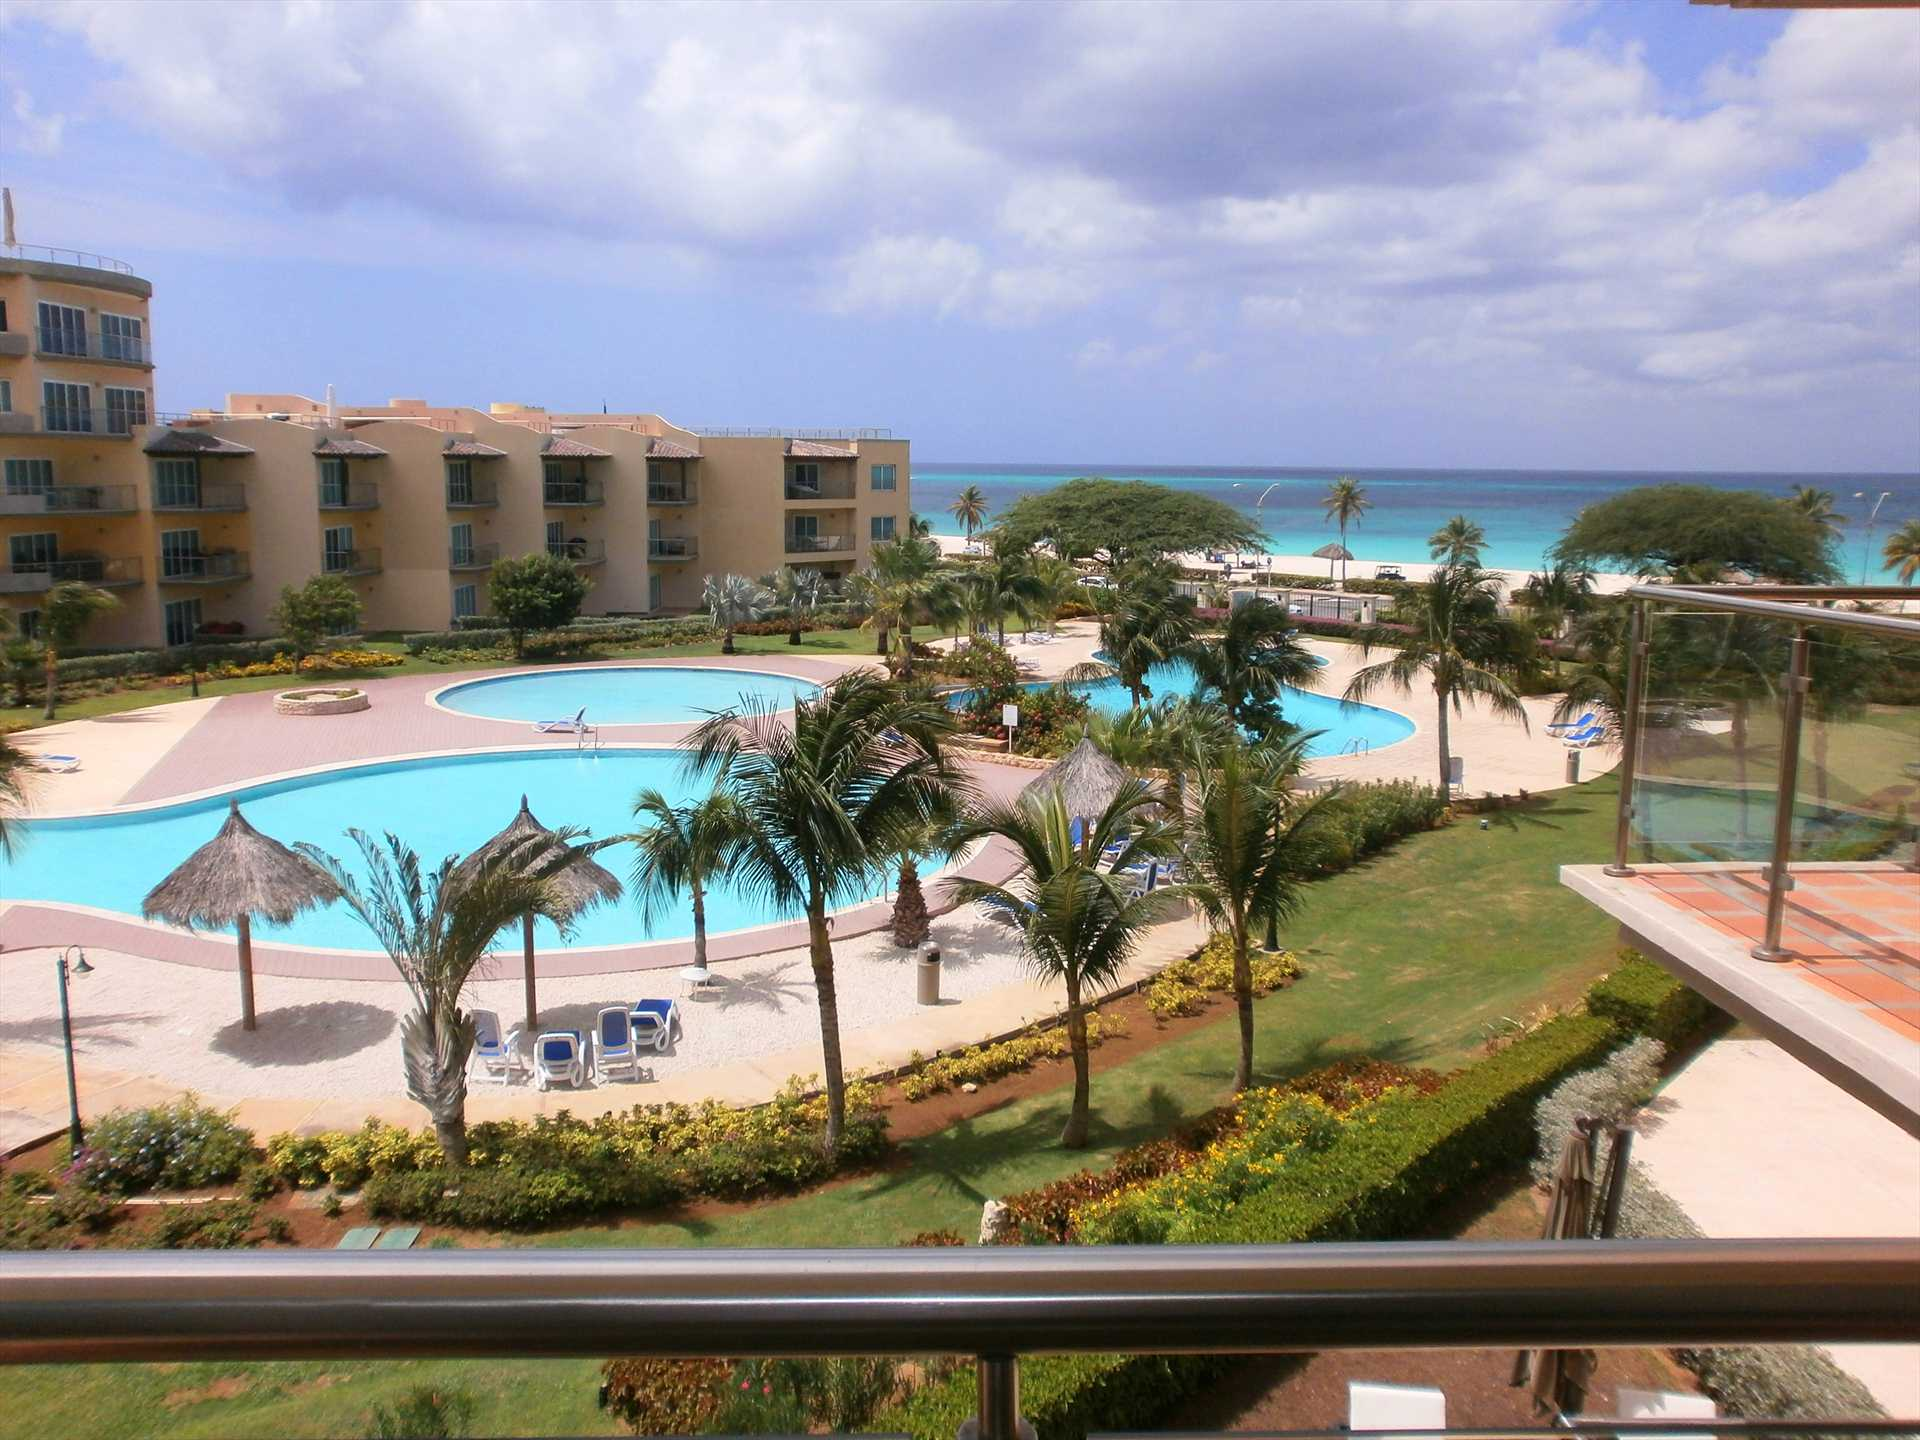 Your view on the master bedroom balcony